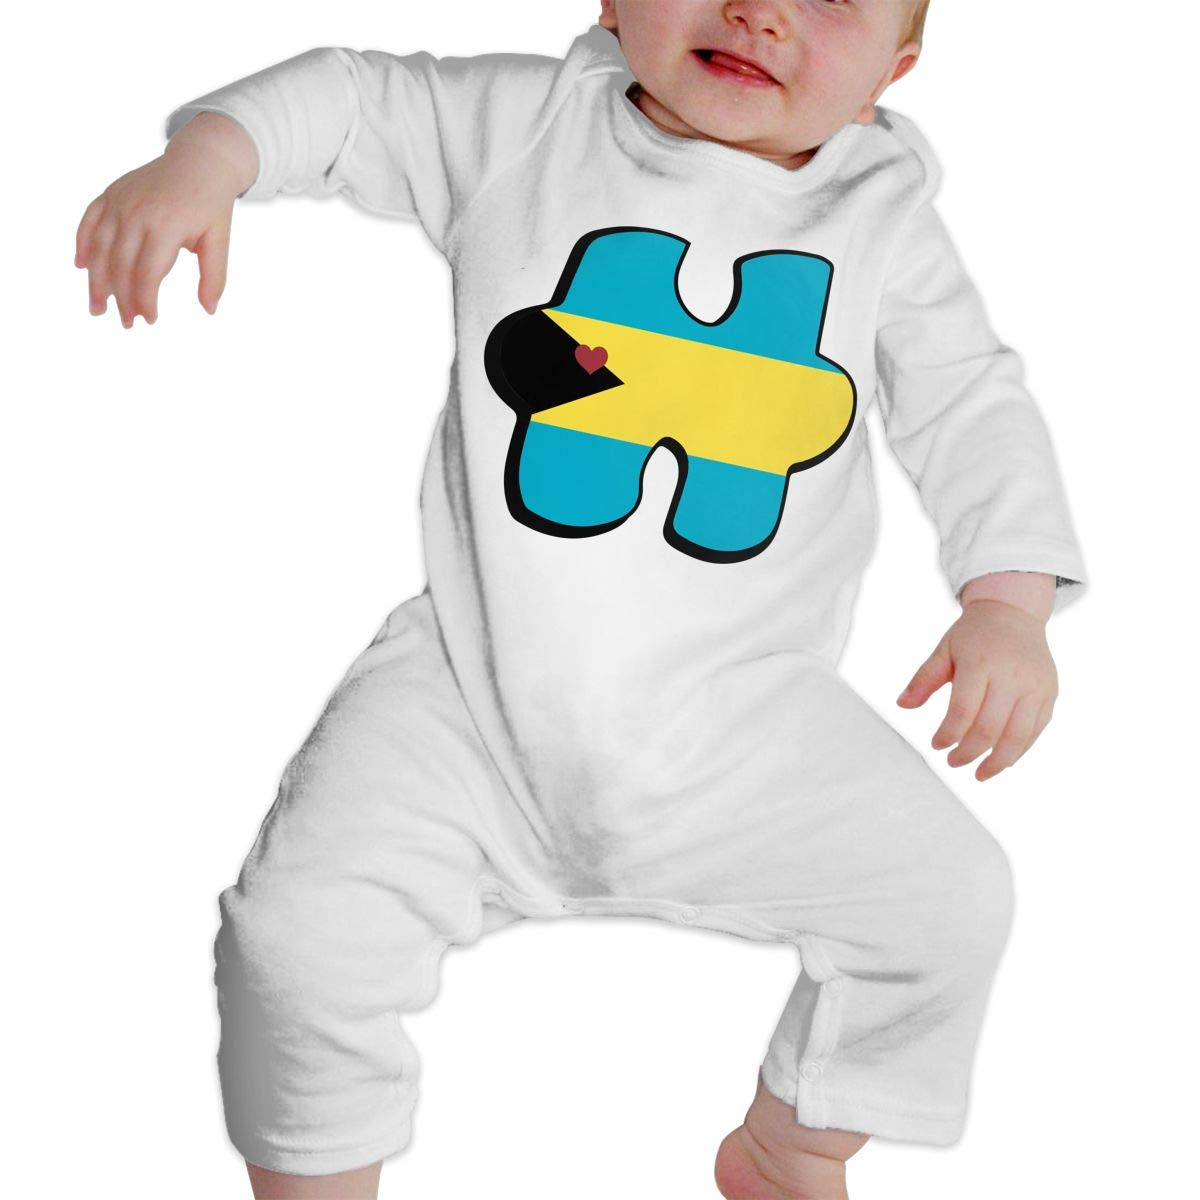 Mri-le1 Baby Boy Coverall Autism Awareness Bahamas Flag Puzzle Infant Long Sleeve Romper Jumpsuit